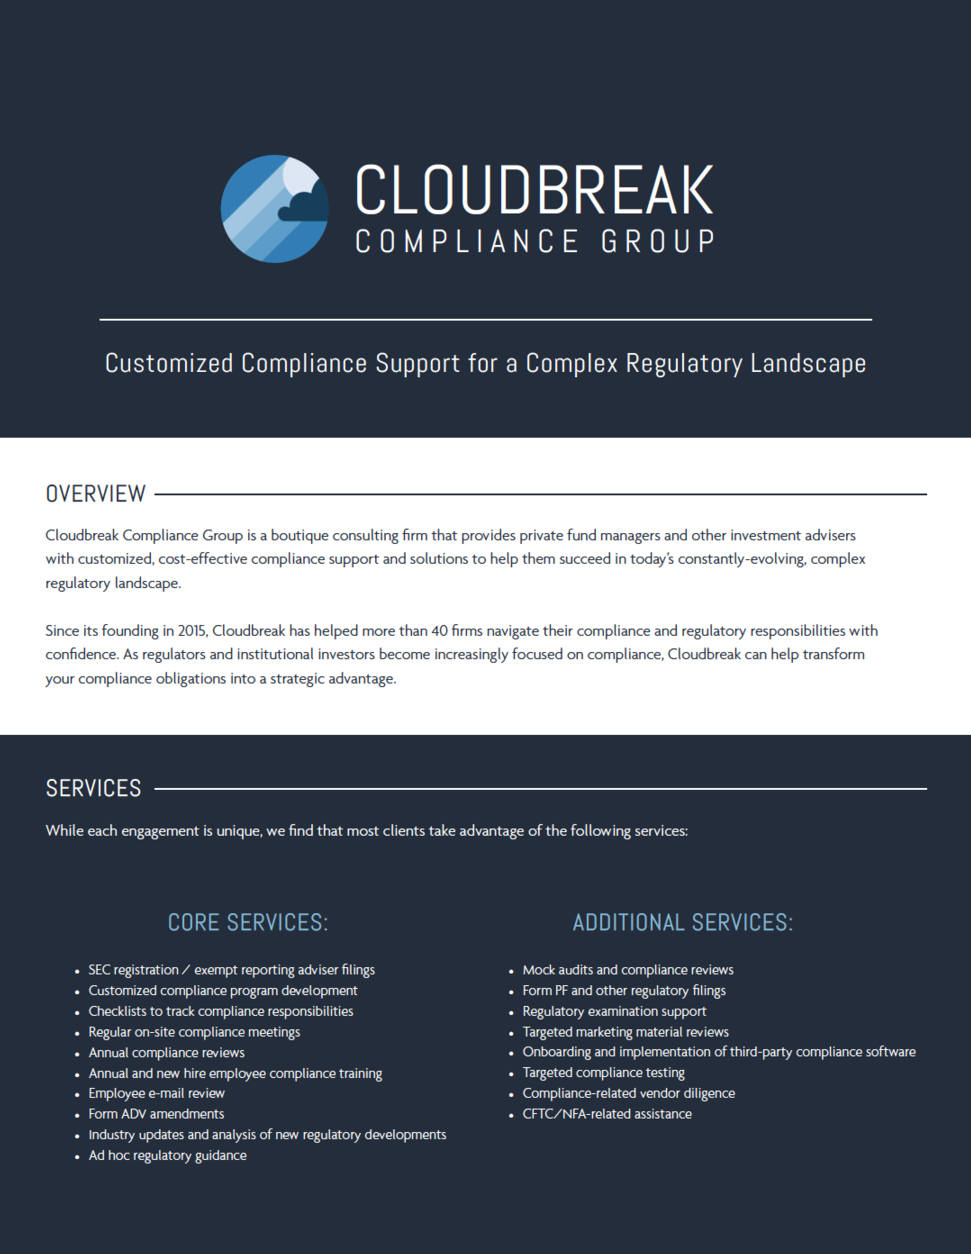 Cloudbreak One-Pager